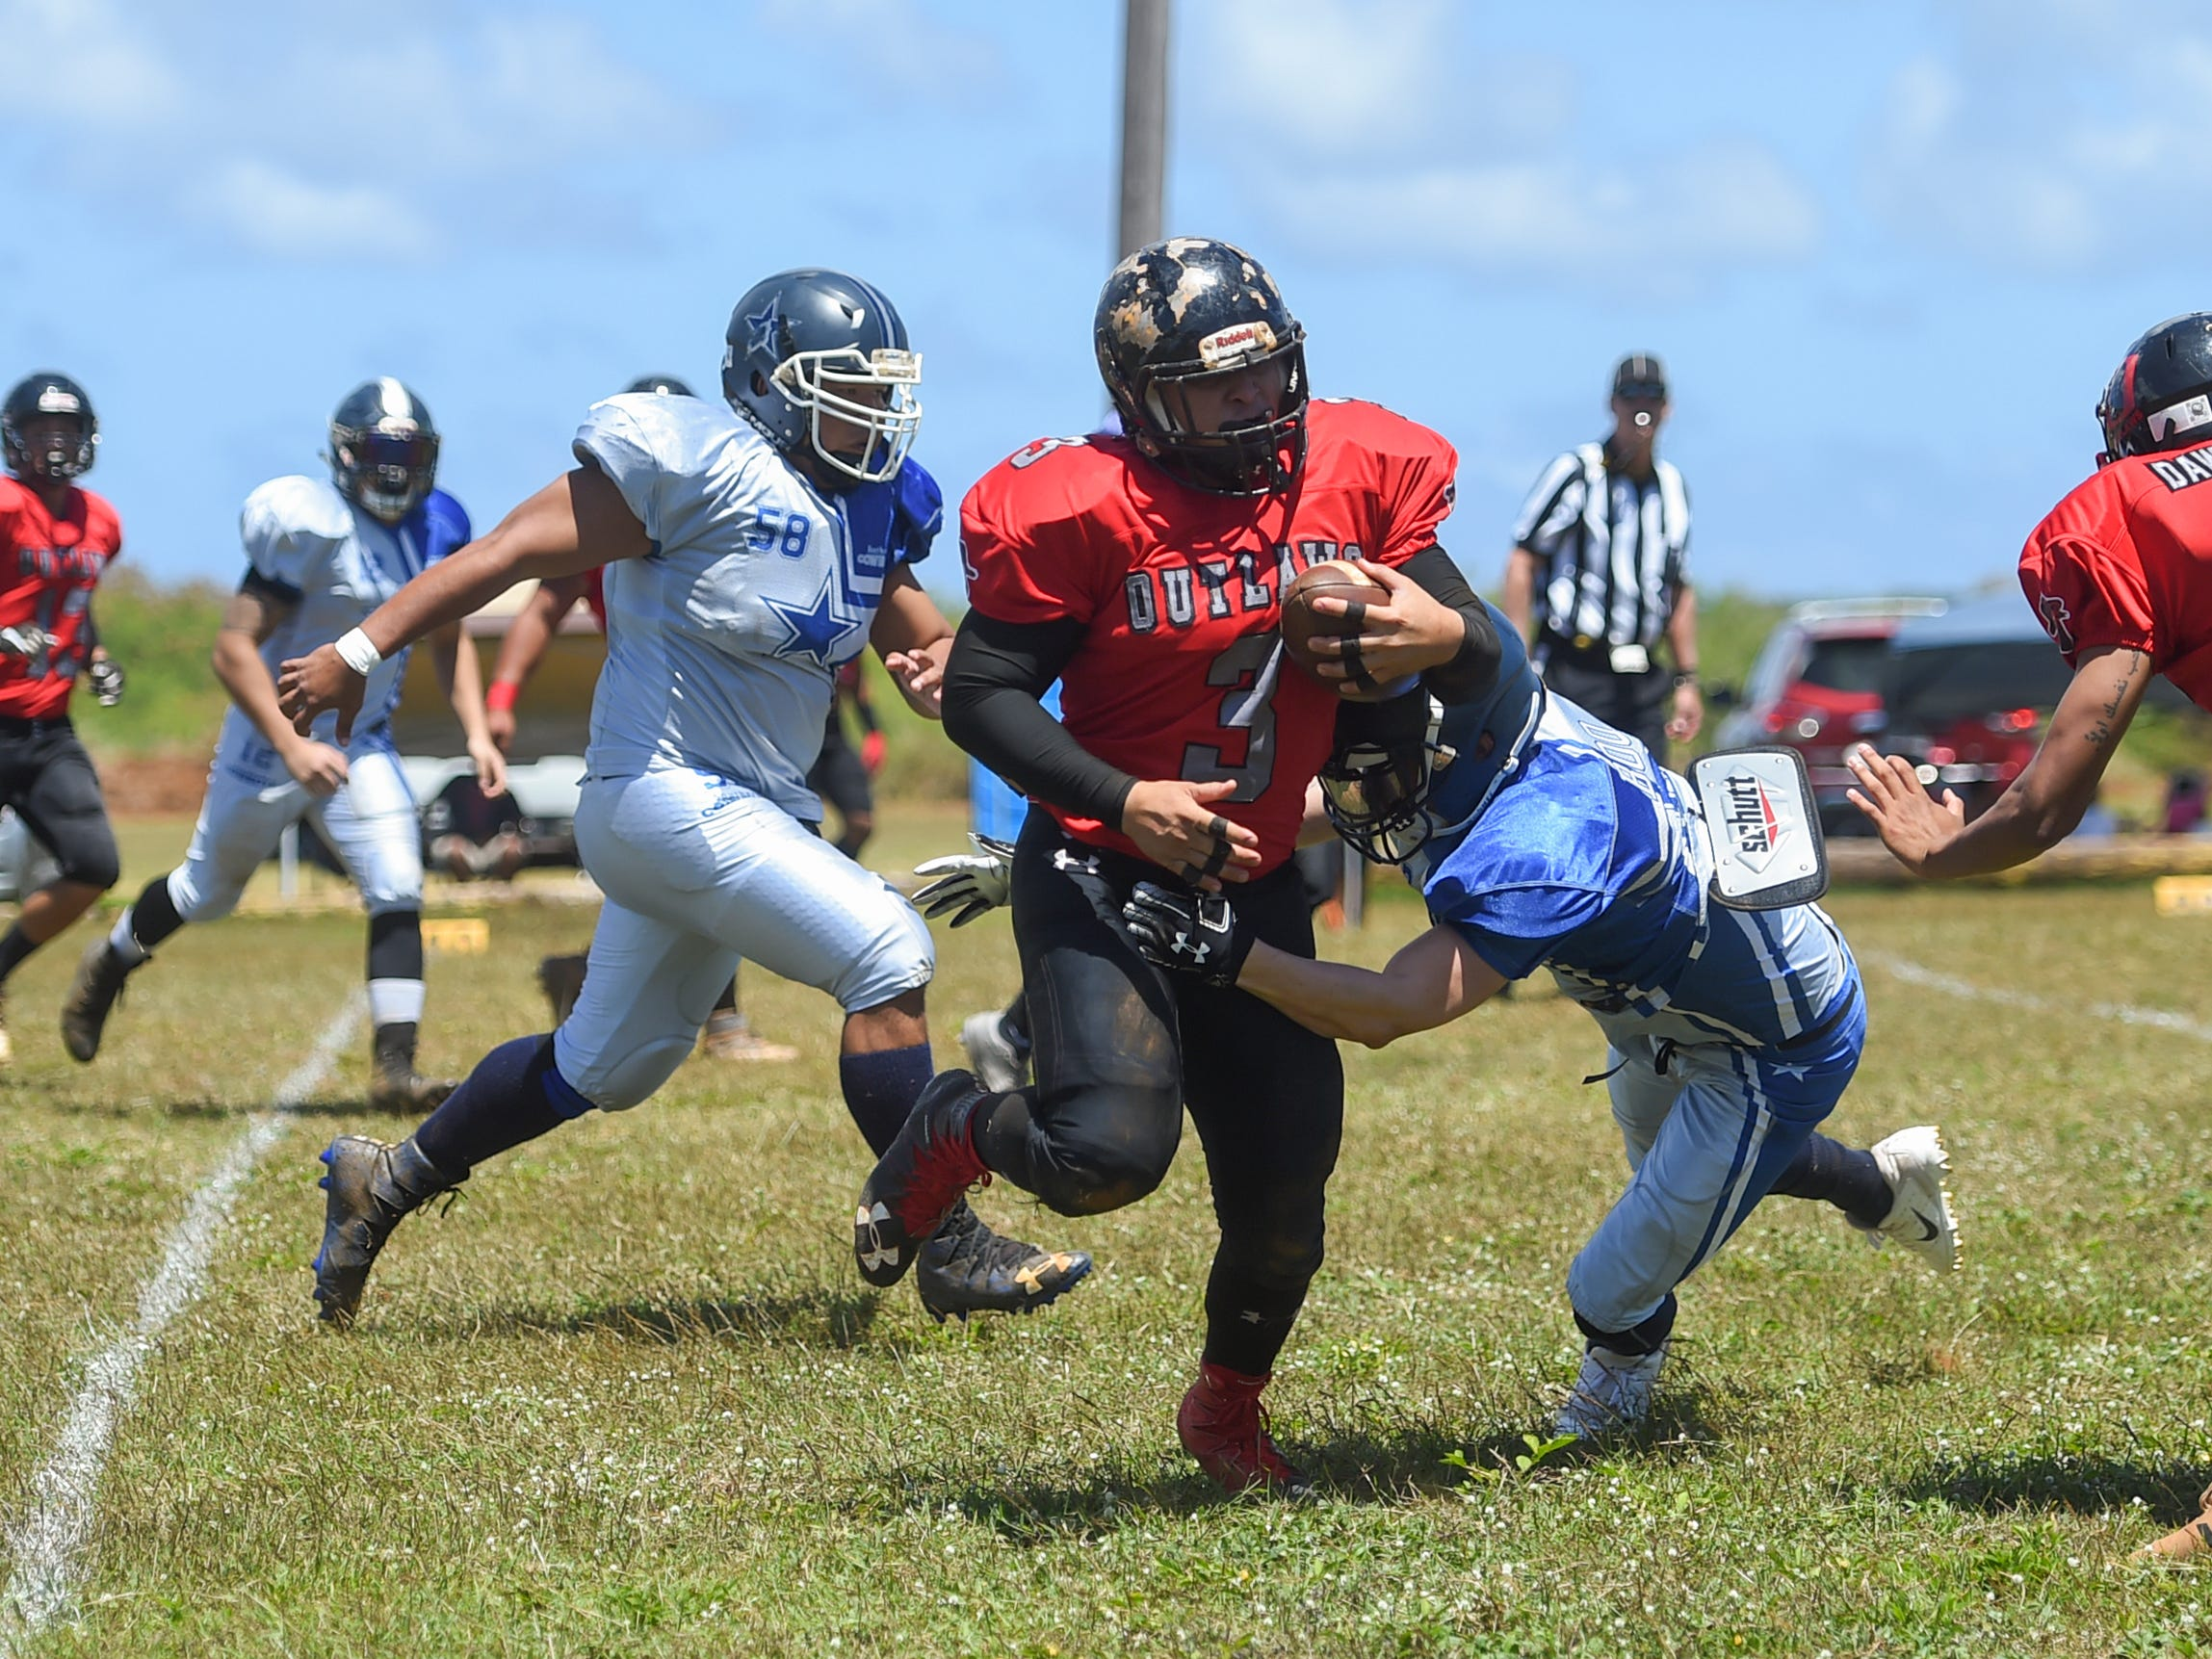 Outlaws player Frankie Fernandez (3) runs the ball against the Southern Cowboys during a Budweiser Guahan Varsity Football League game at Eagles Field in Mangilao, March 9, 2019.